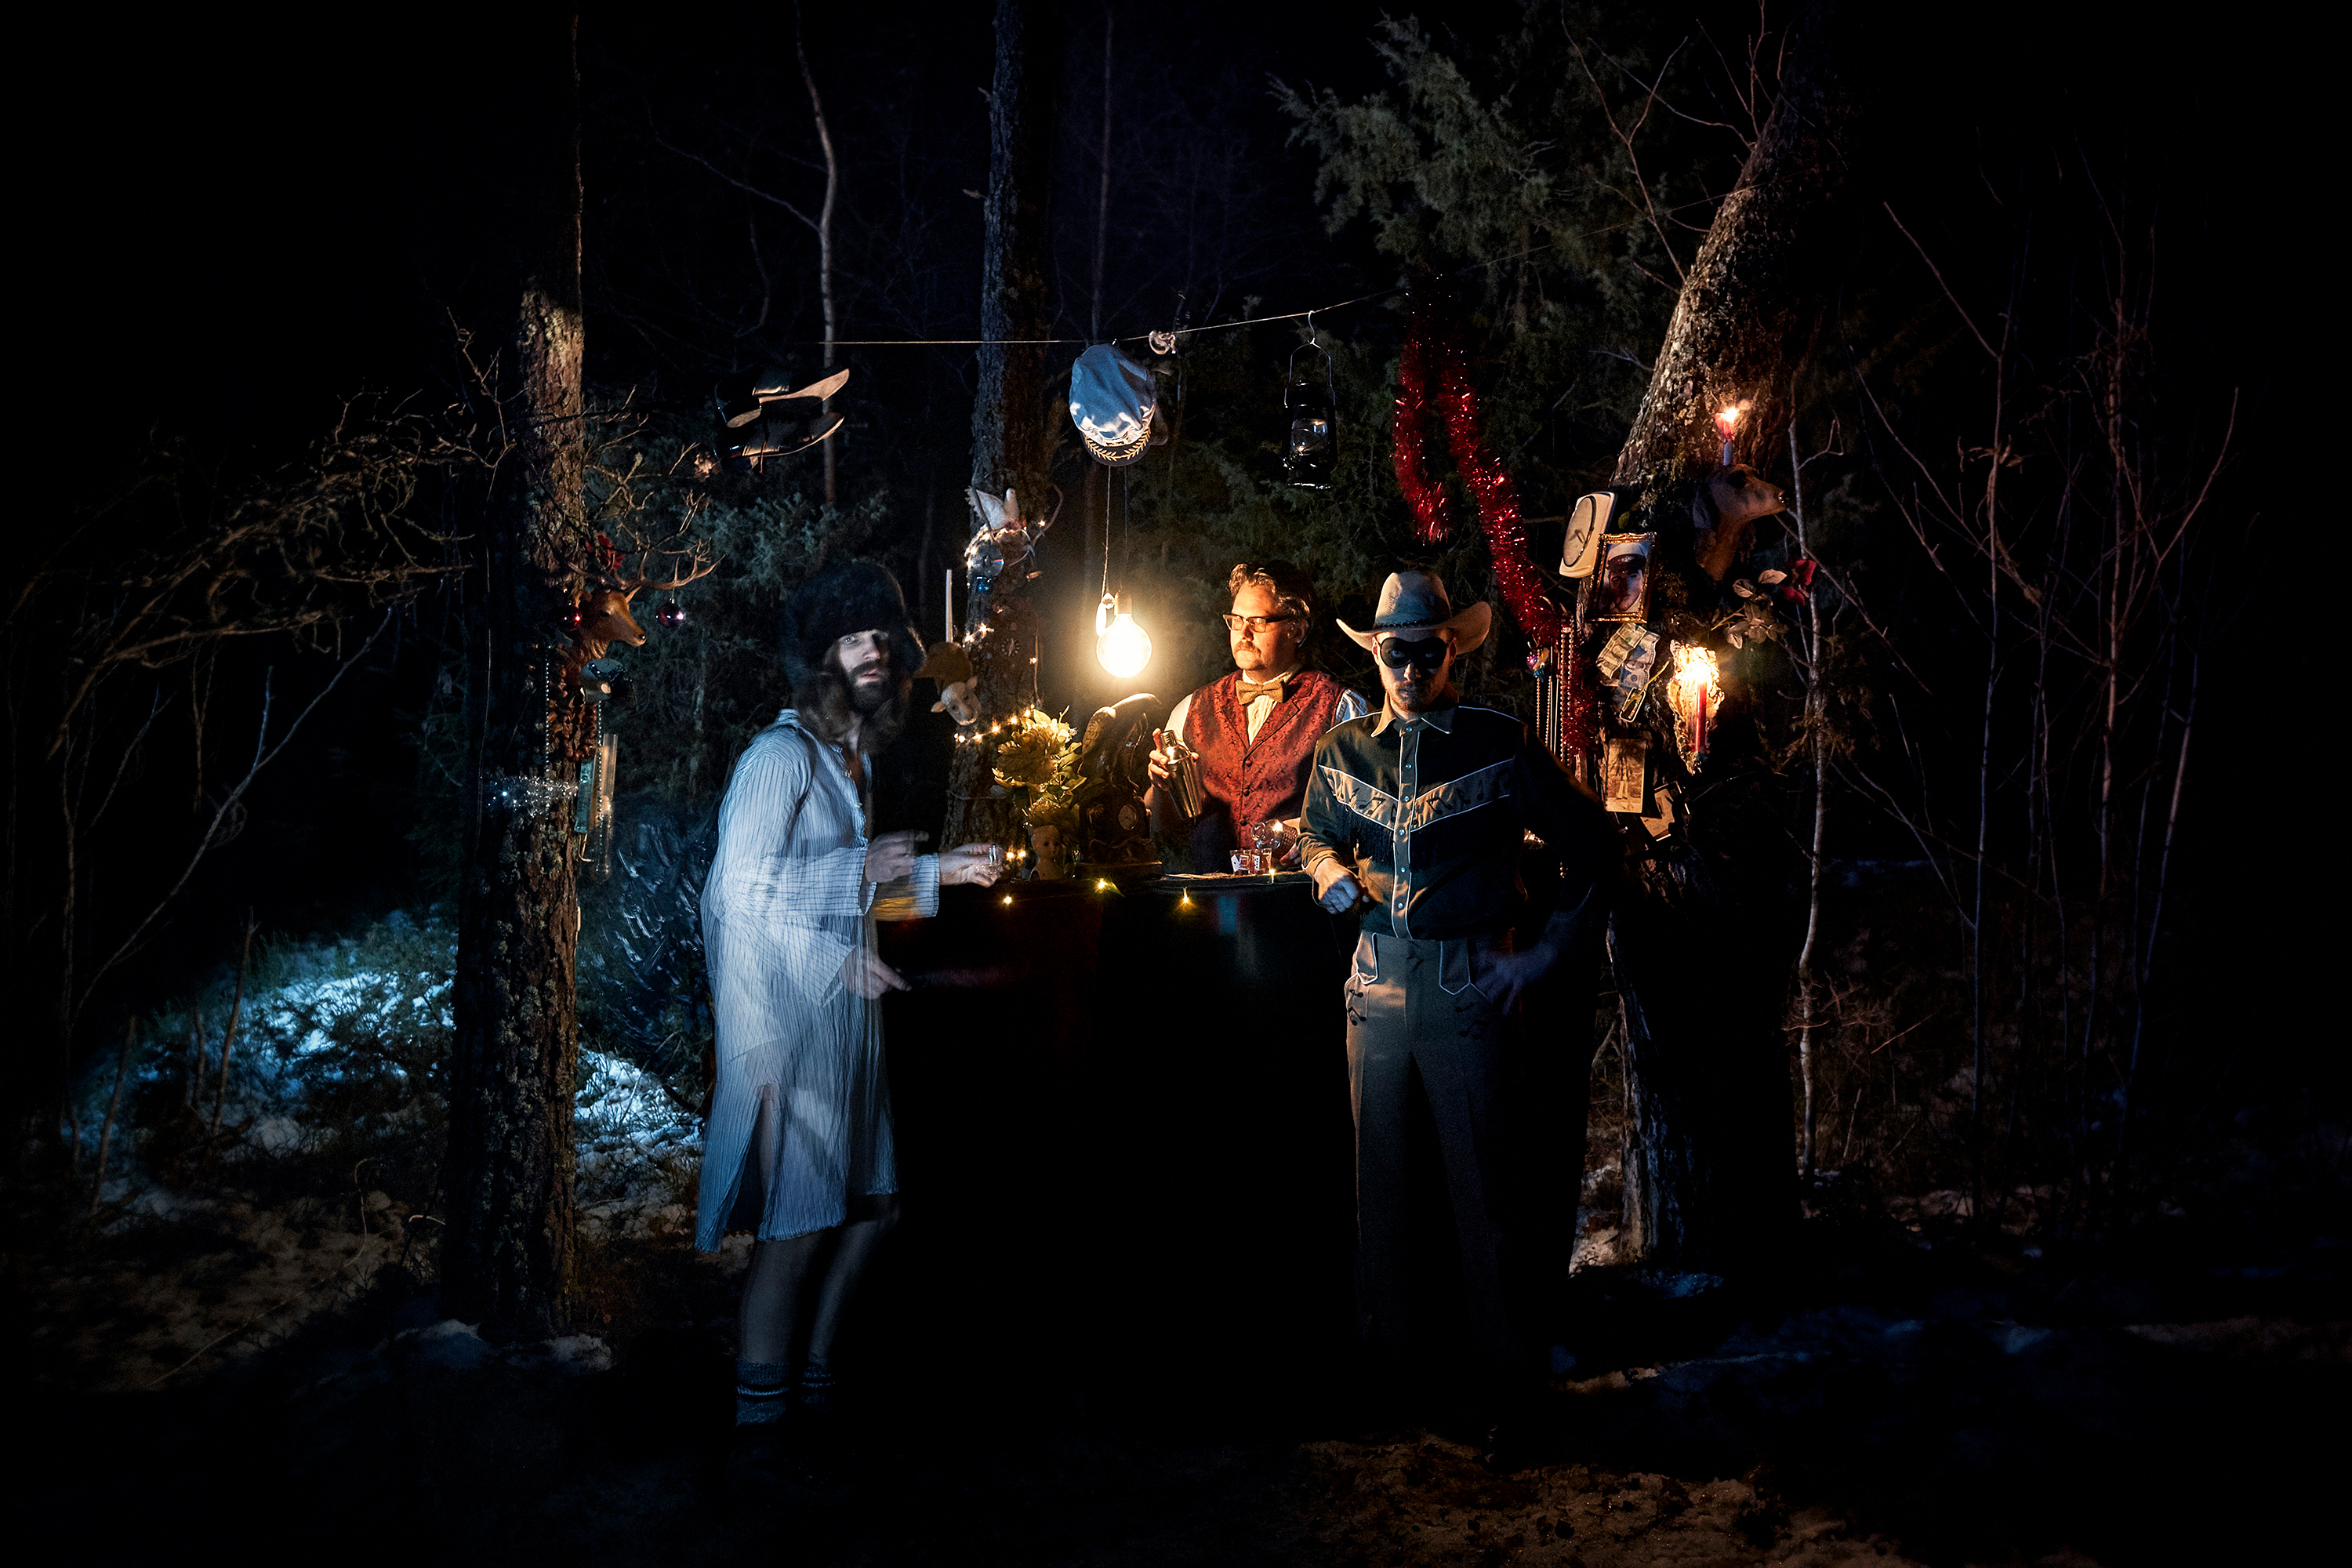 """Swedish band Norma has shared their new video """"Spectacular Bid""""."""